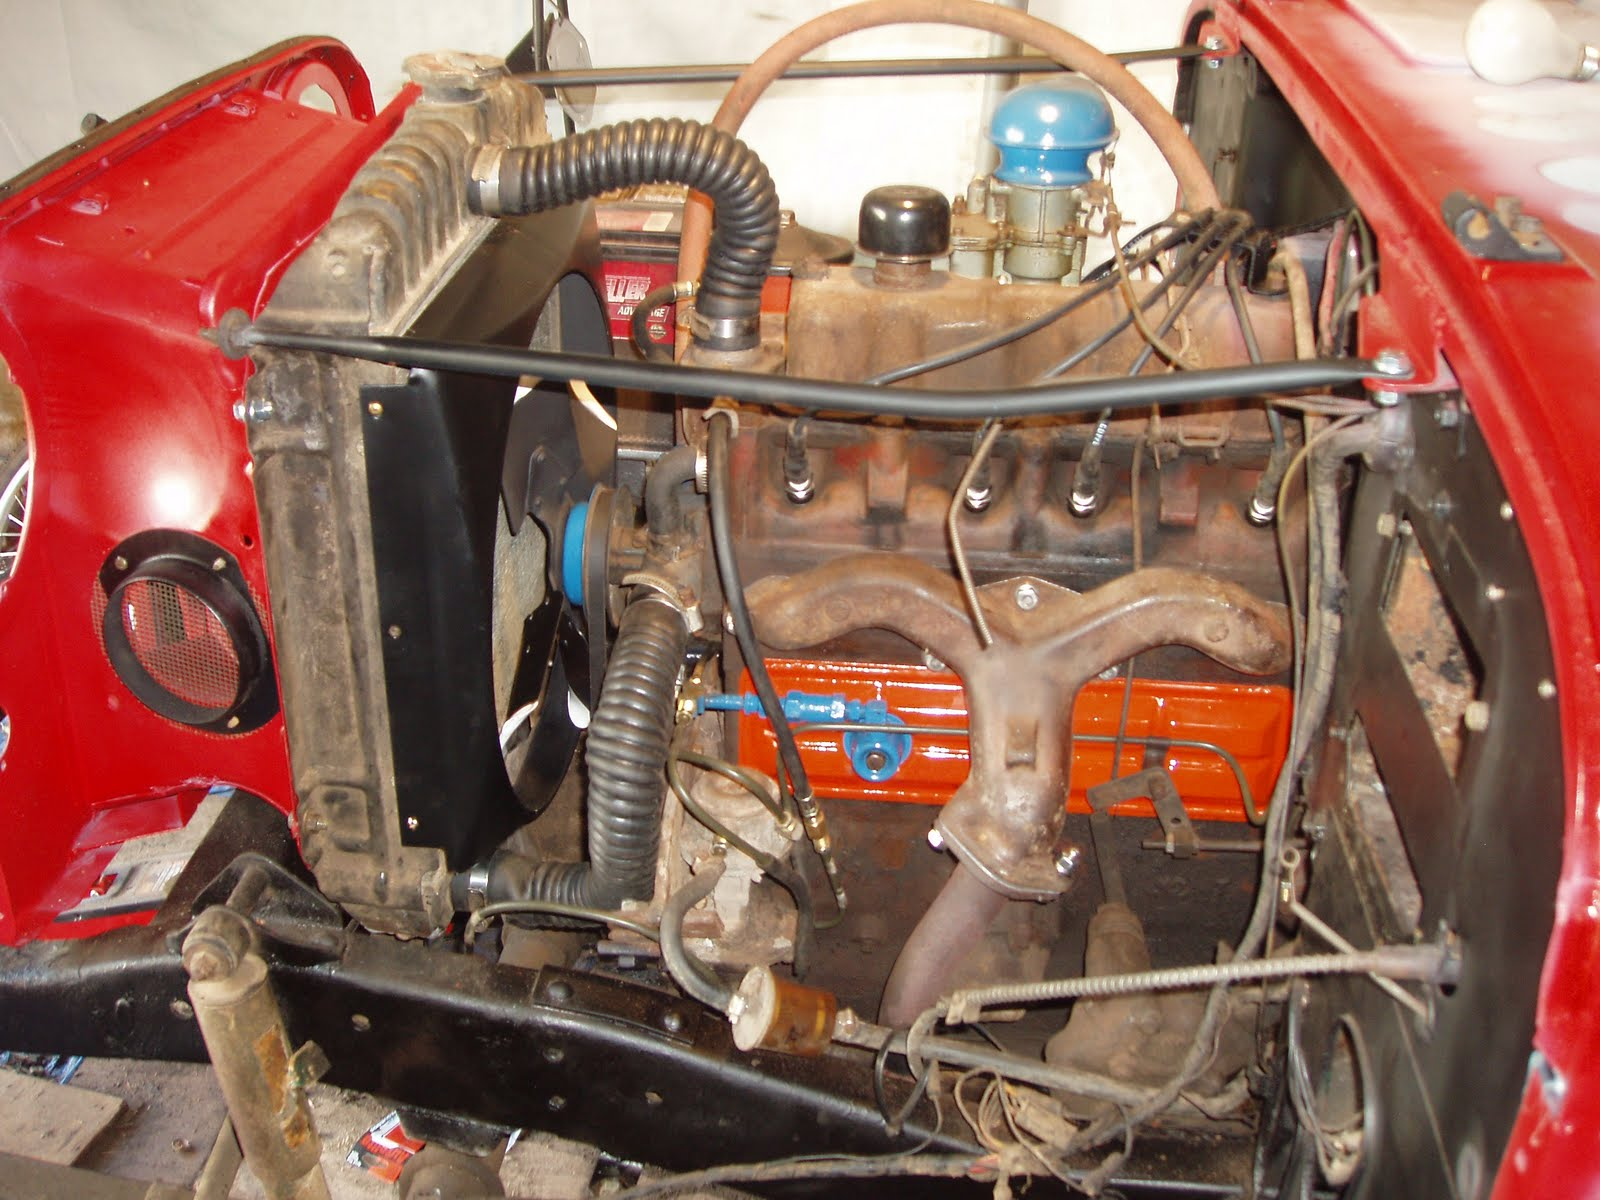 willys jeep project: hurricane engine (2.0)